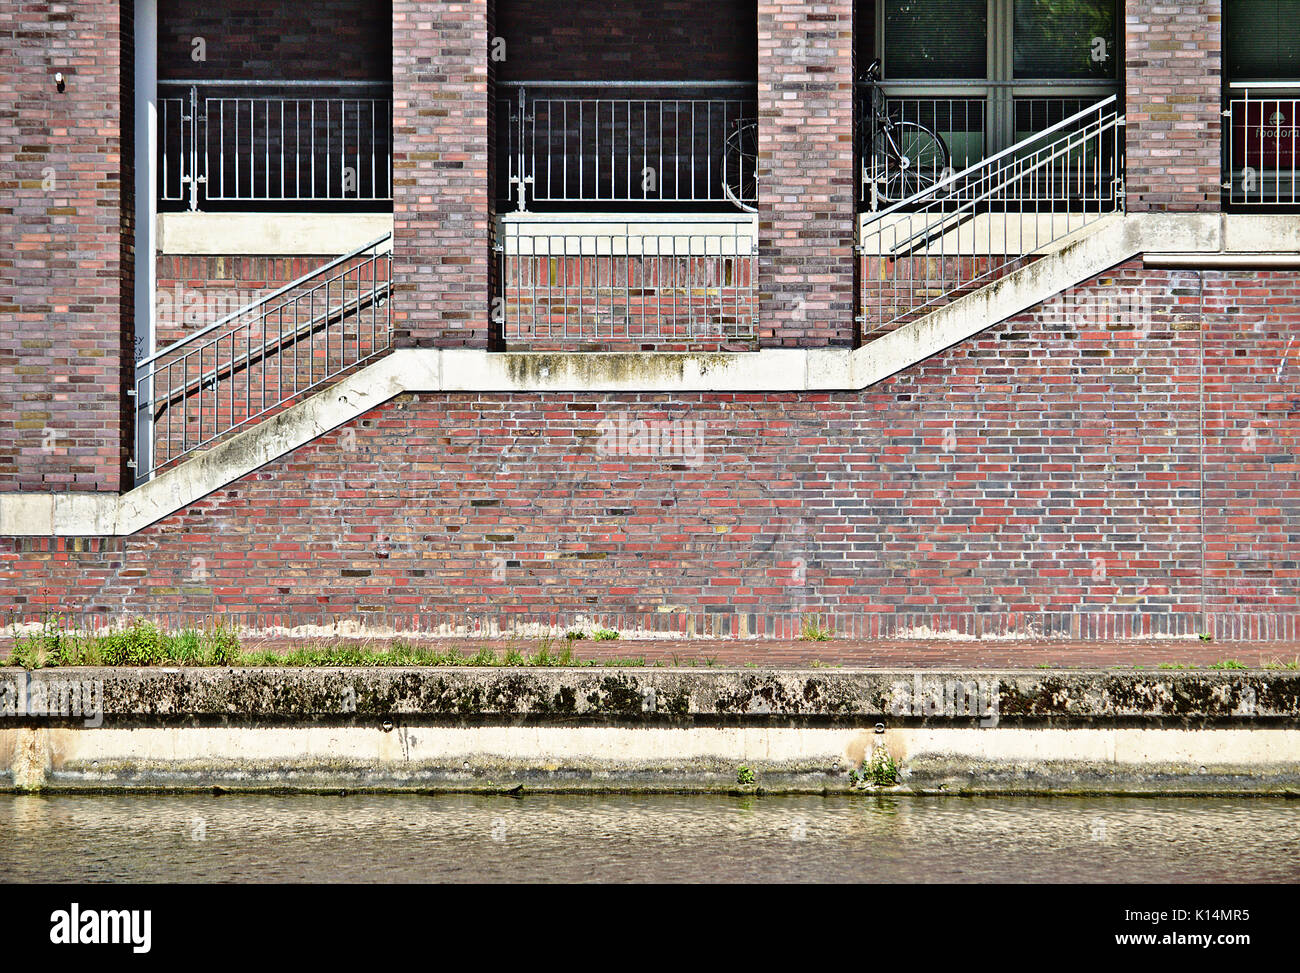 Waterfront building with sidewalk, flight of stairs, red and grey brick wall and brick pillars - Stock Image